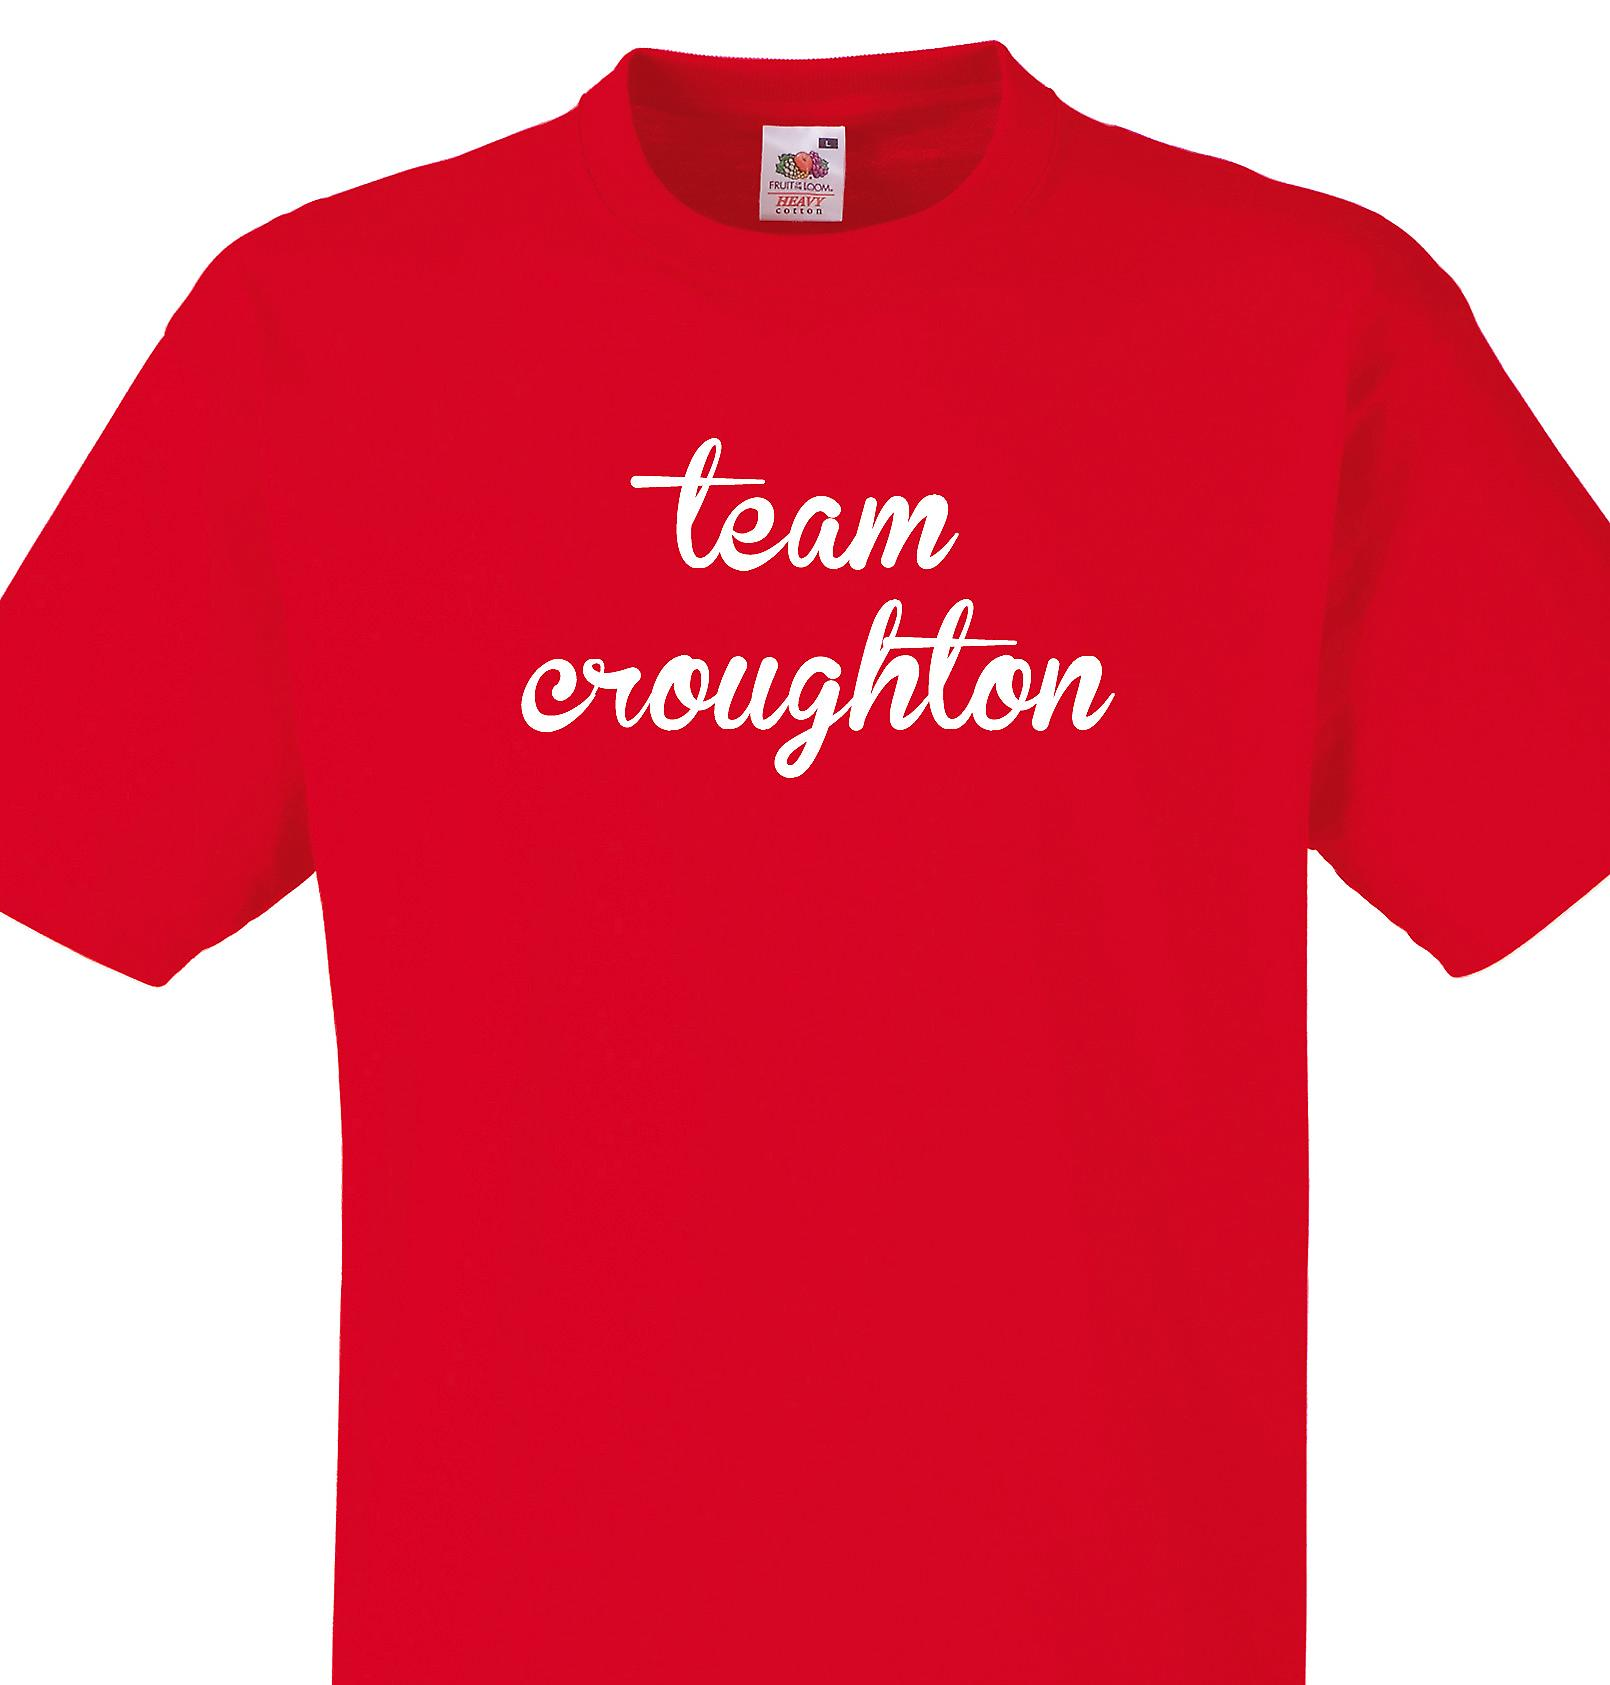 Team Croughton Red T shirt